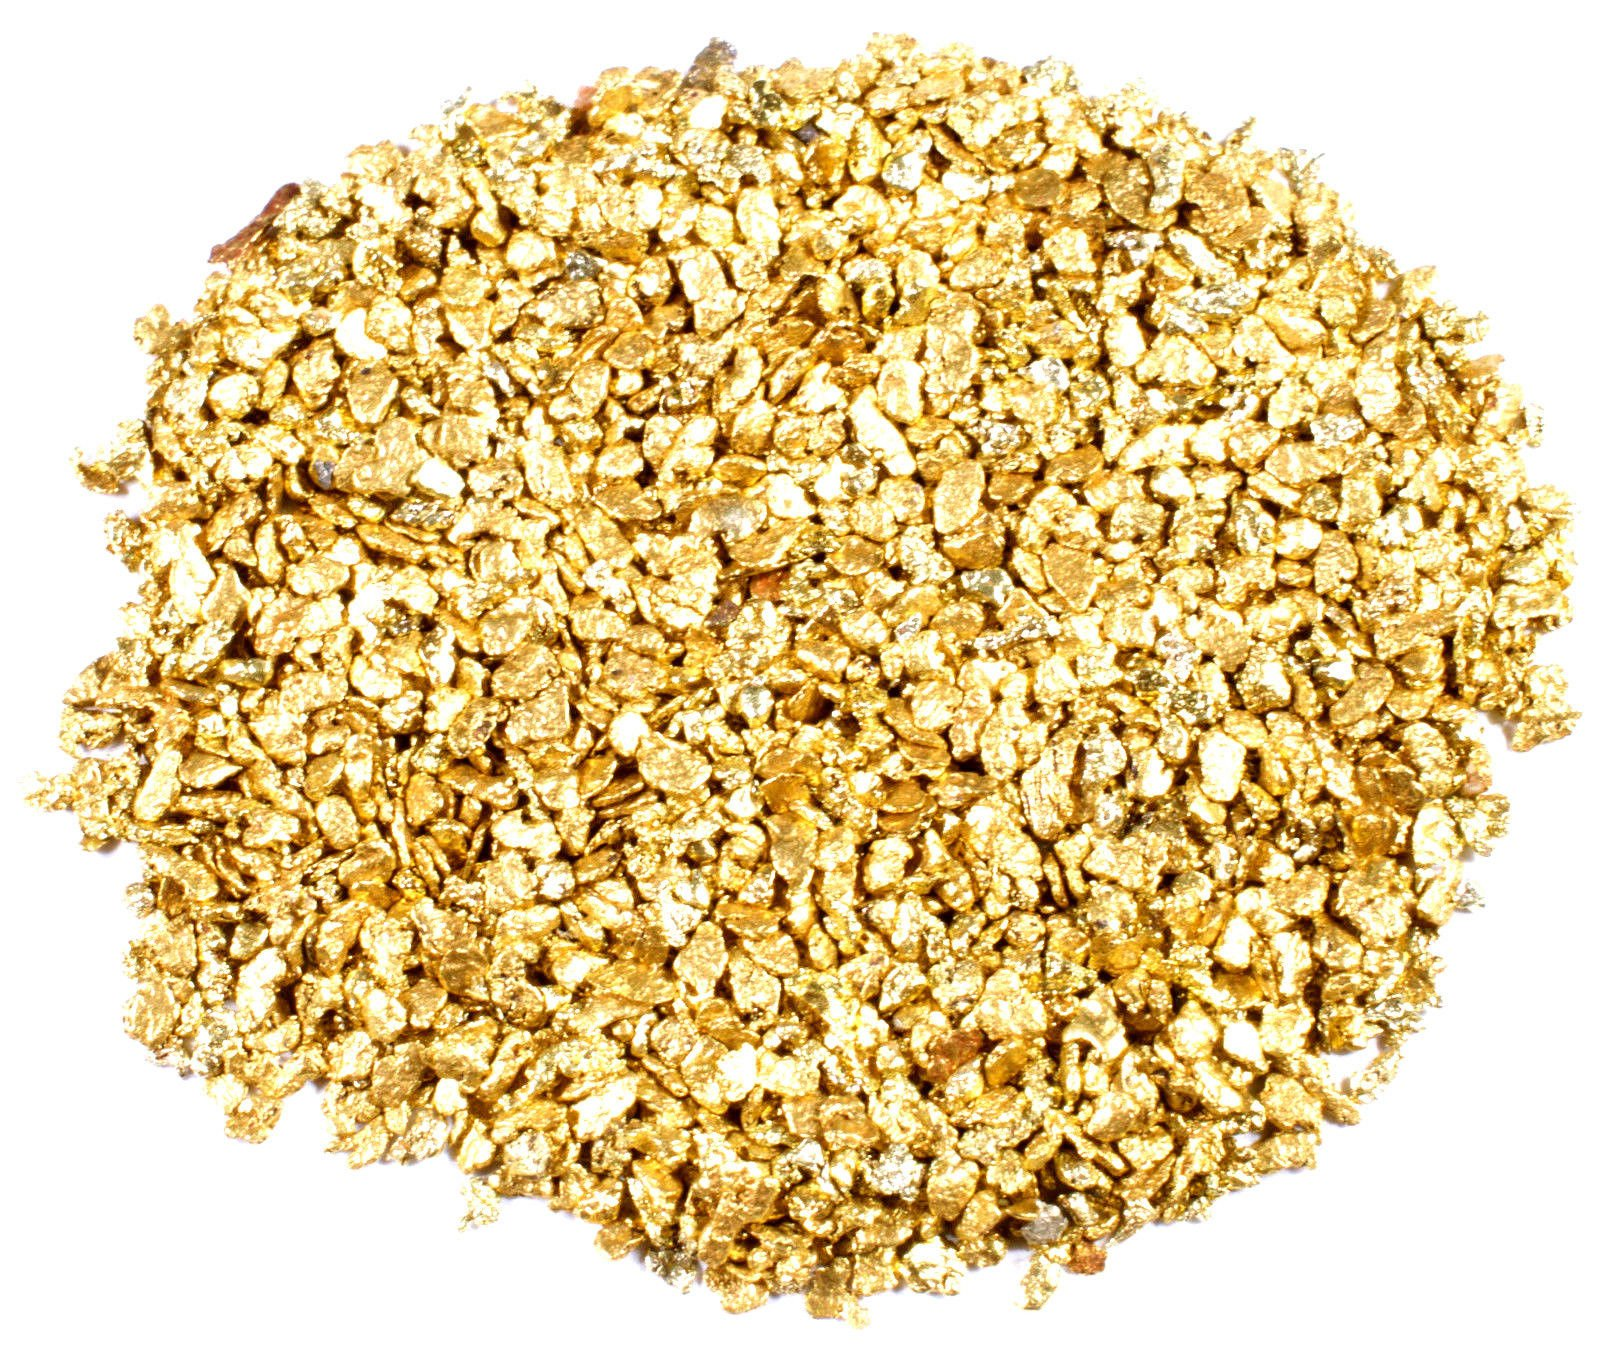 Startup Company Offering Free Gold Nugget With Every Purchase